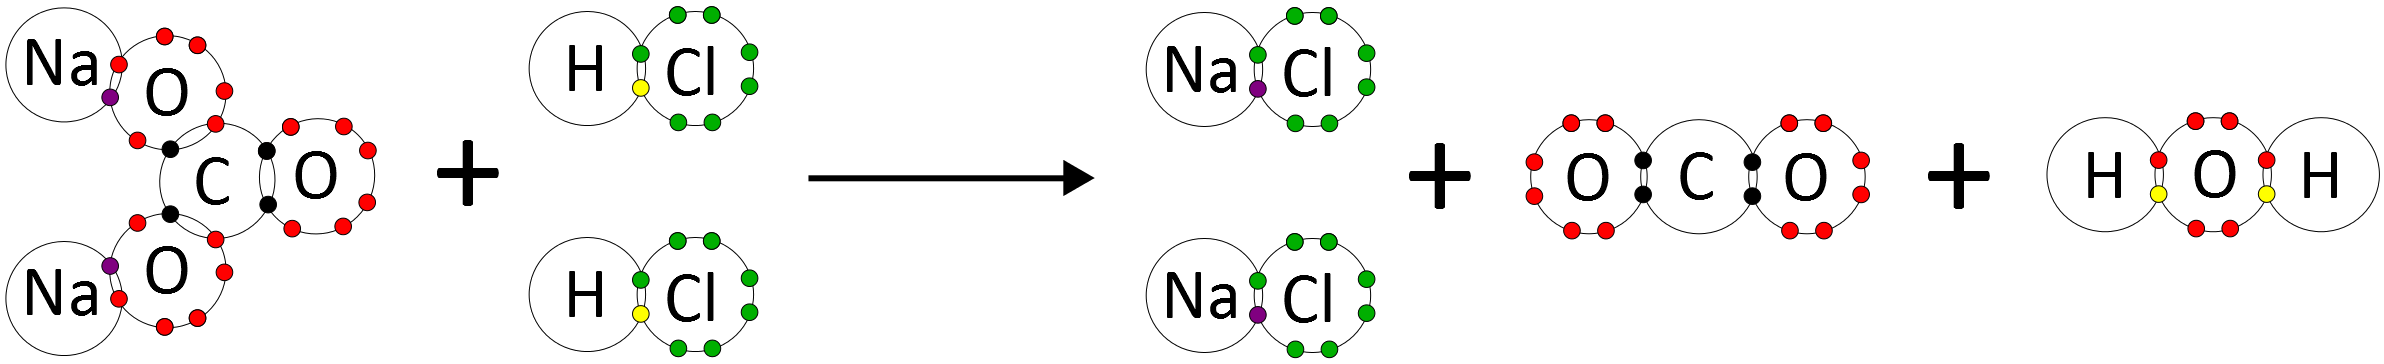 File:Metatesi Na2CO3-HCl Lewis.png - Wikimedia Commons Na2co3 Lewis Structure